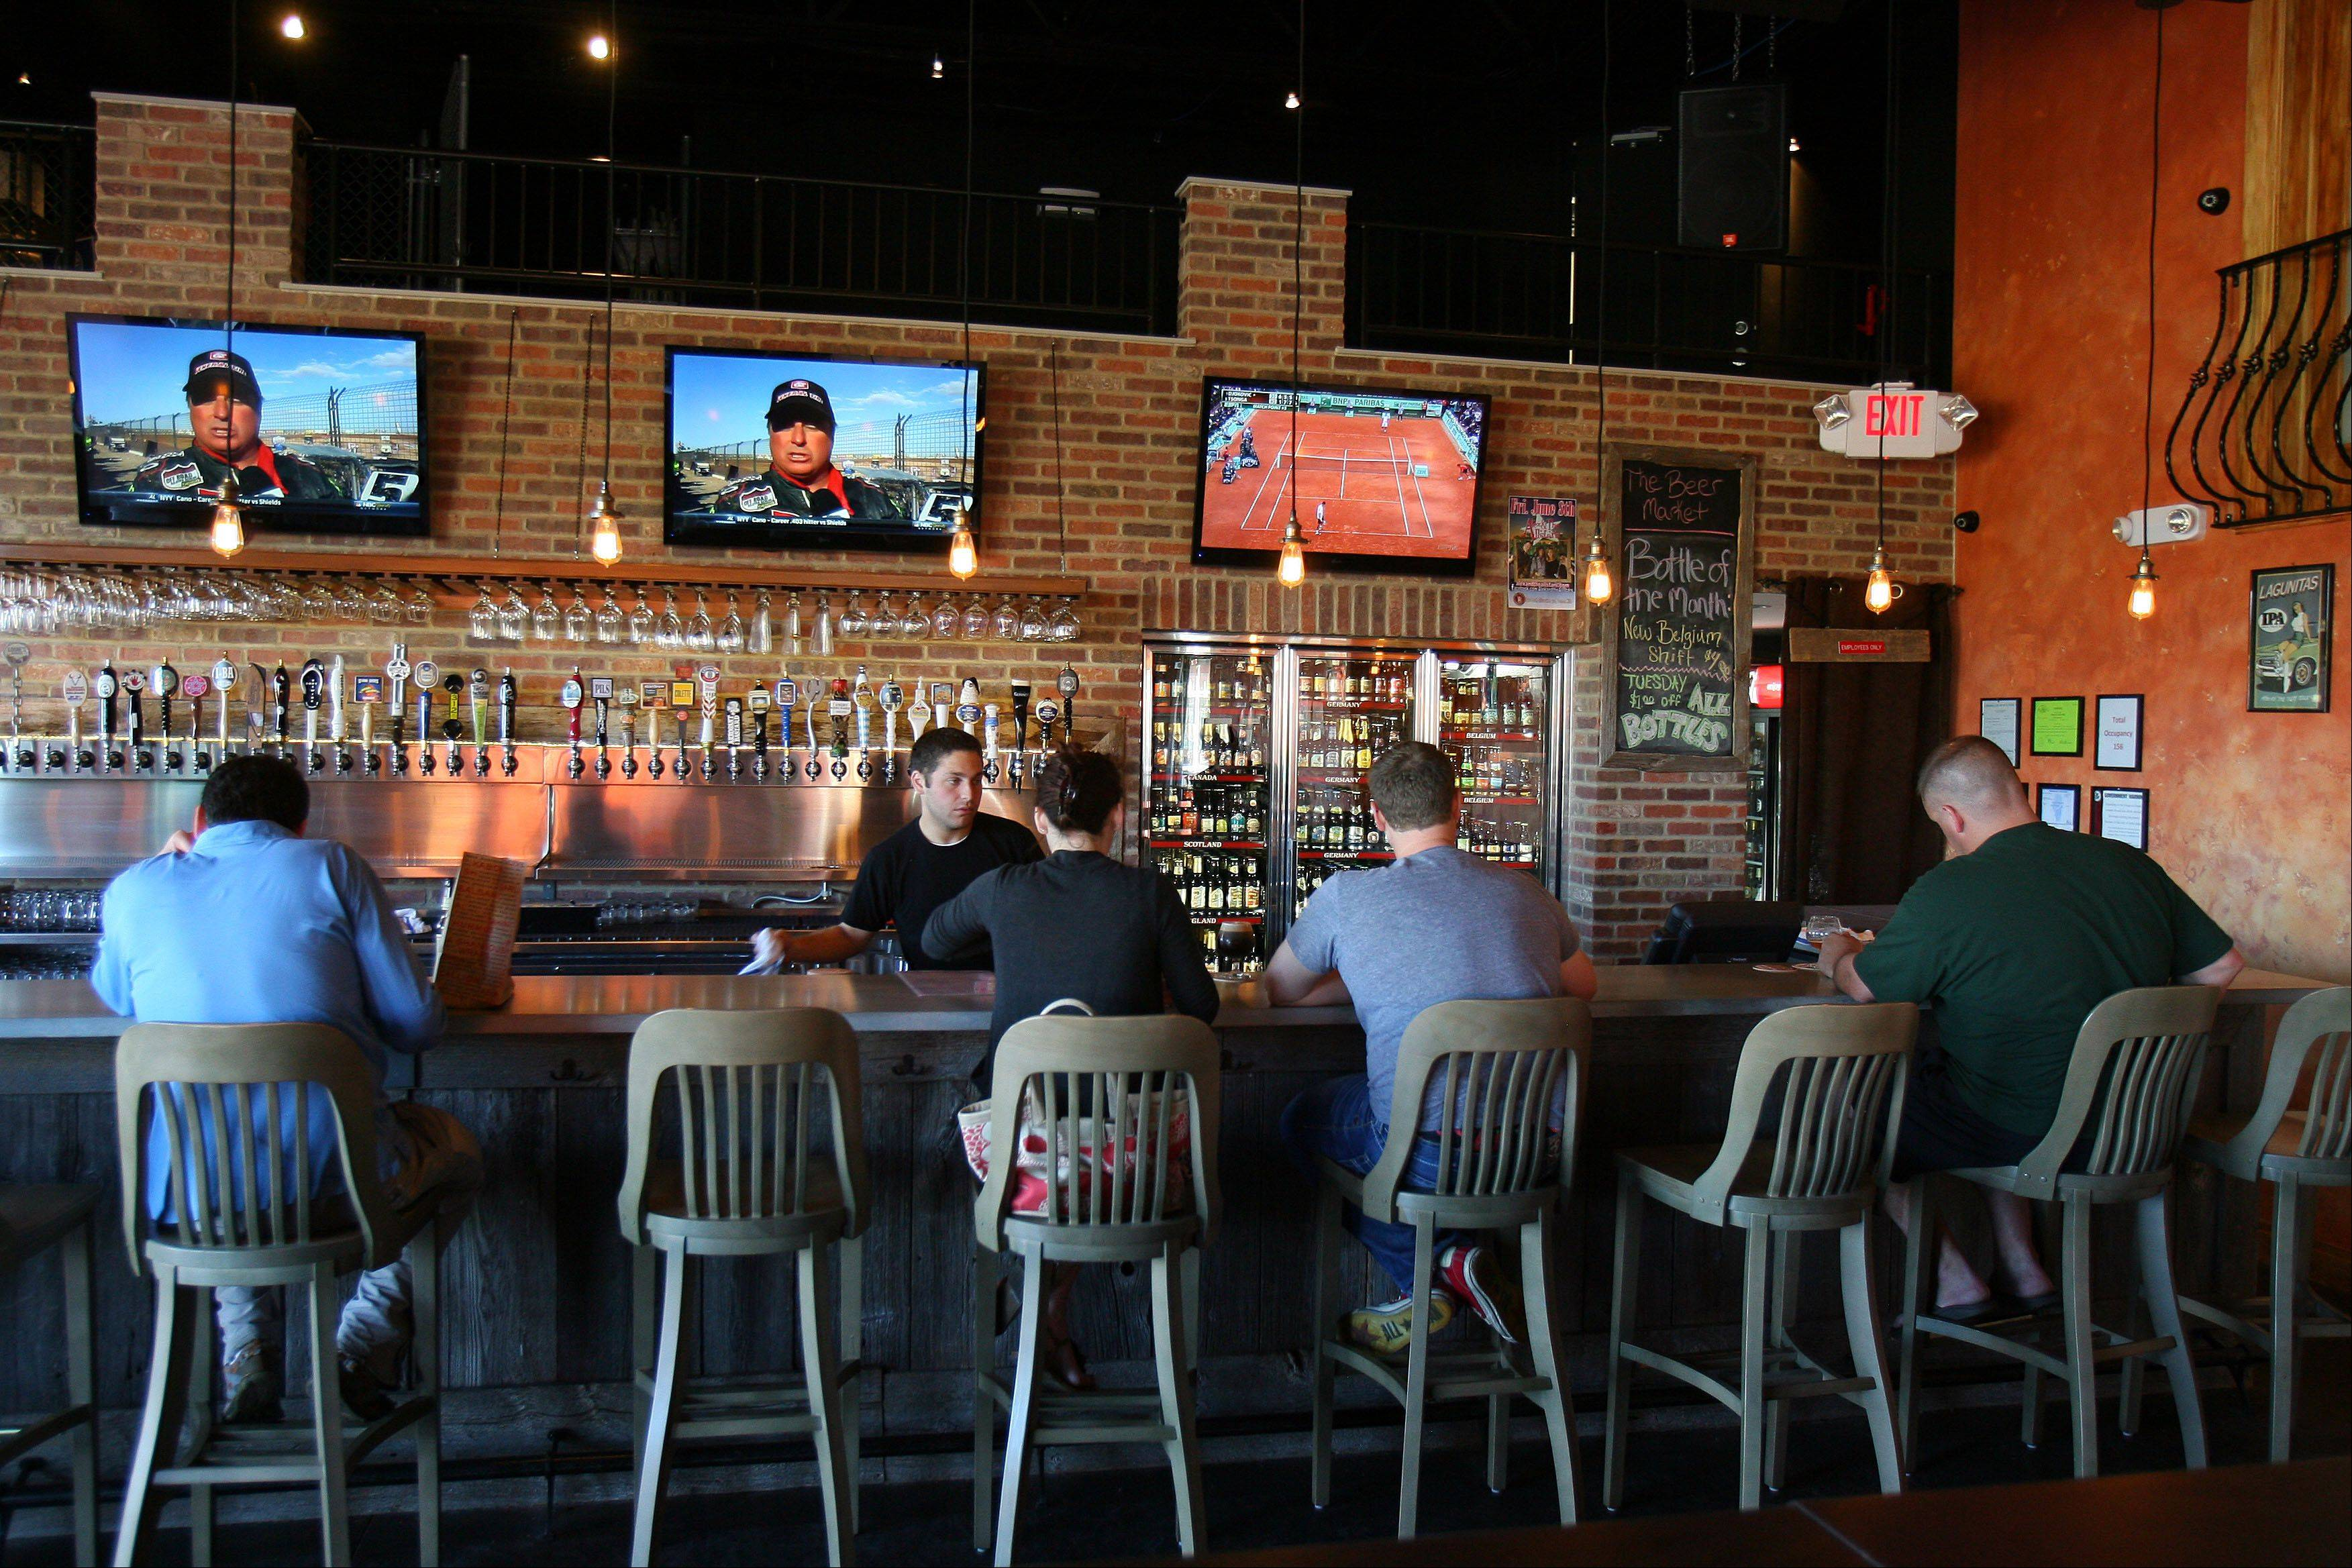 The Beer Market in Vernon Hills draws both the after-work crowd and groups of twentysomethings enjoying a night out.